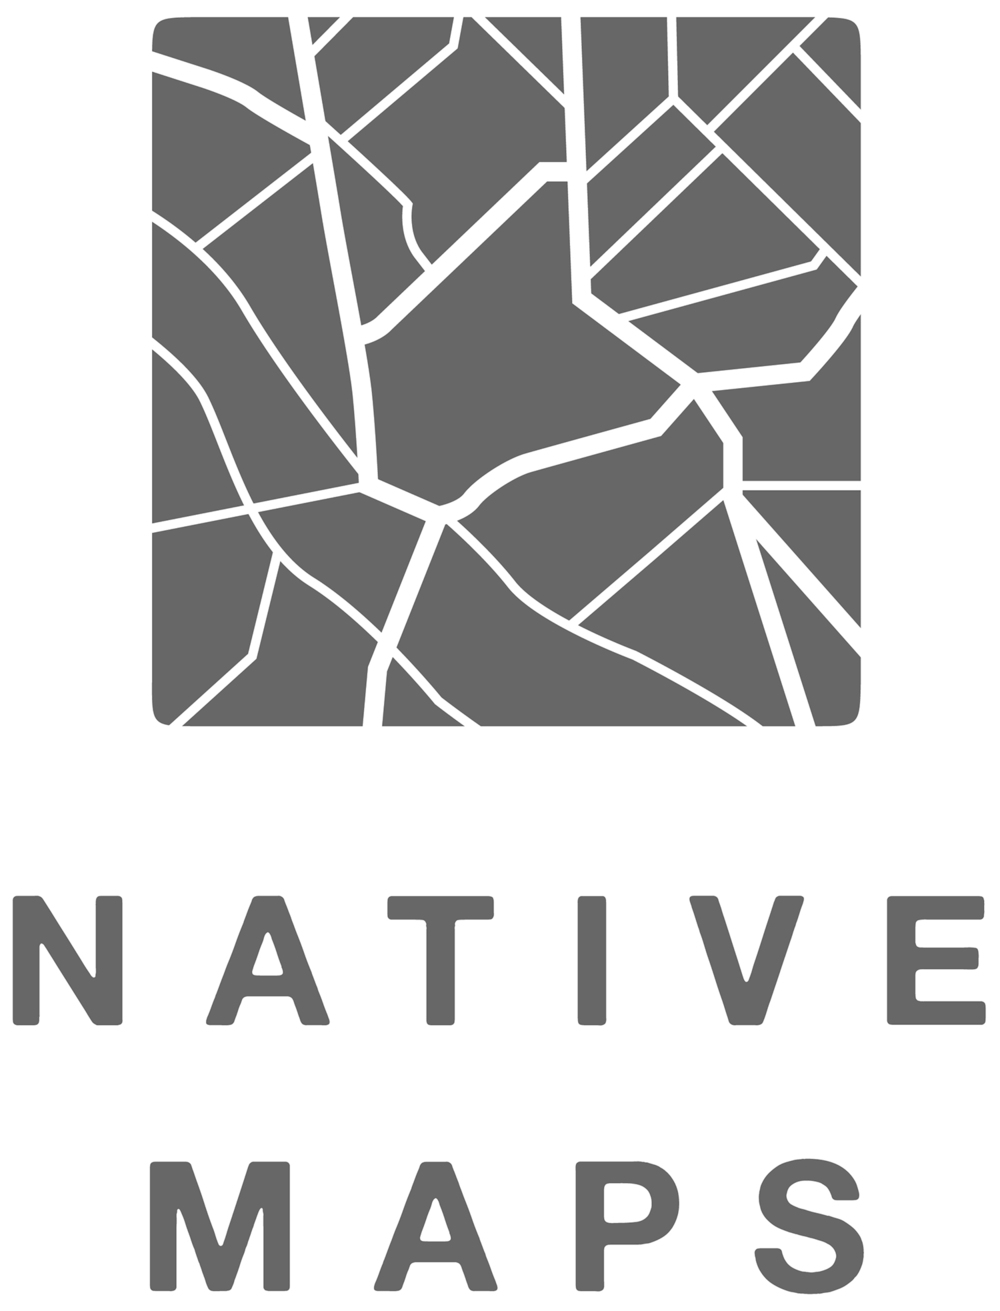 Native_Maps_logo.jpg